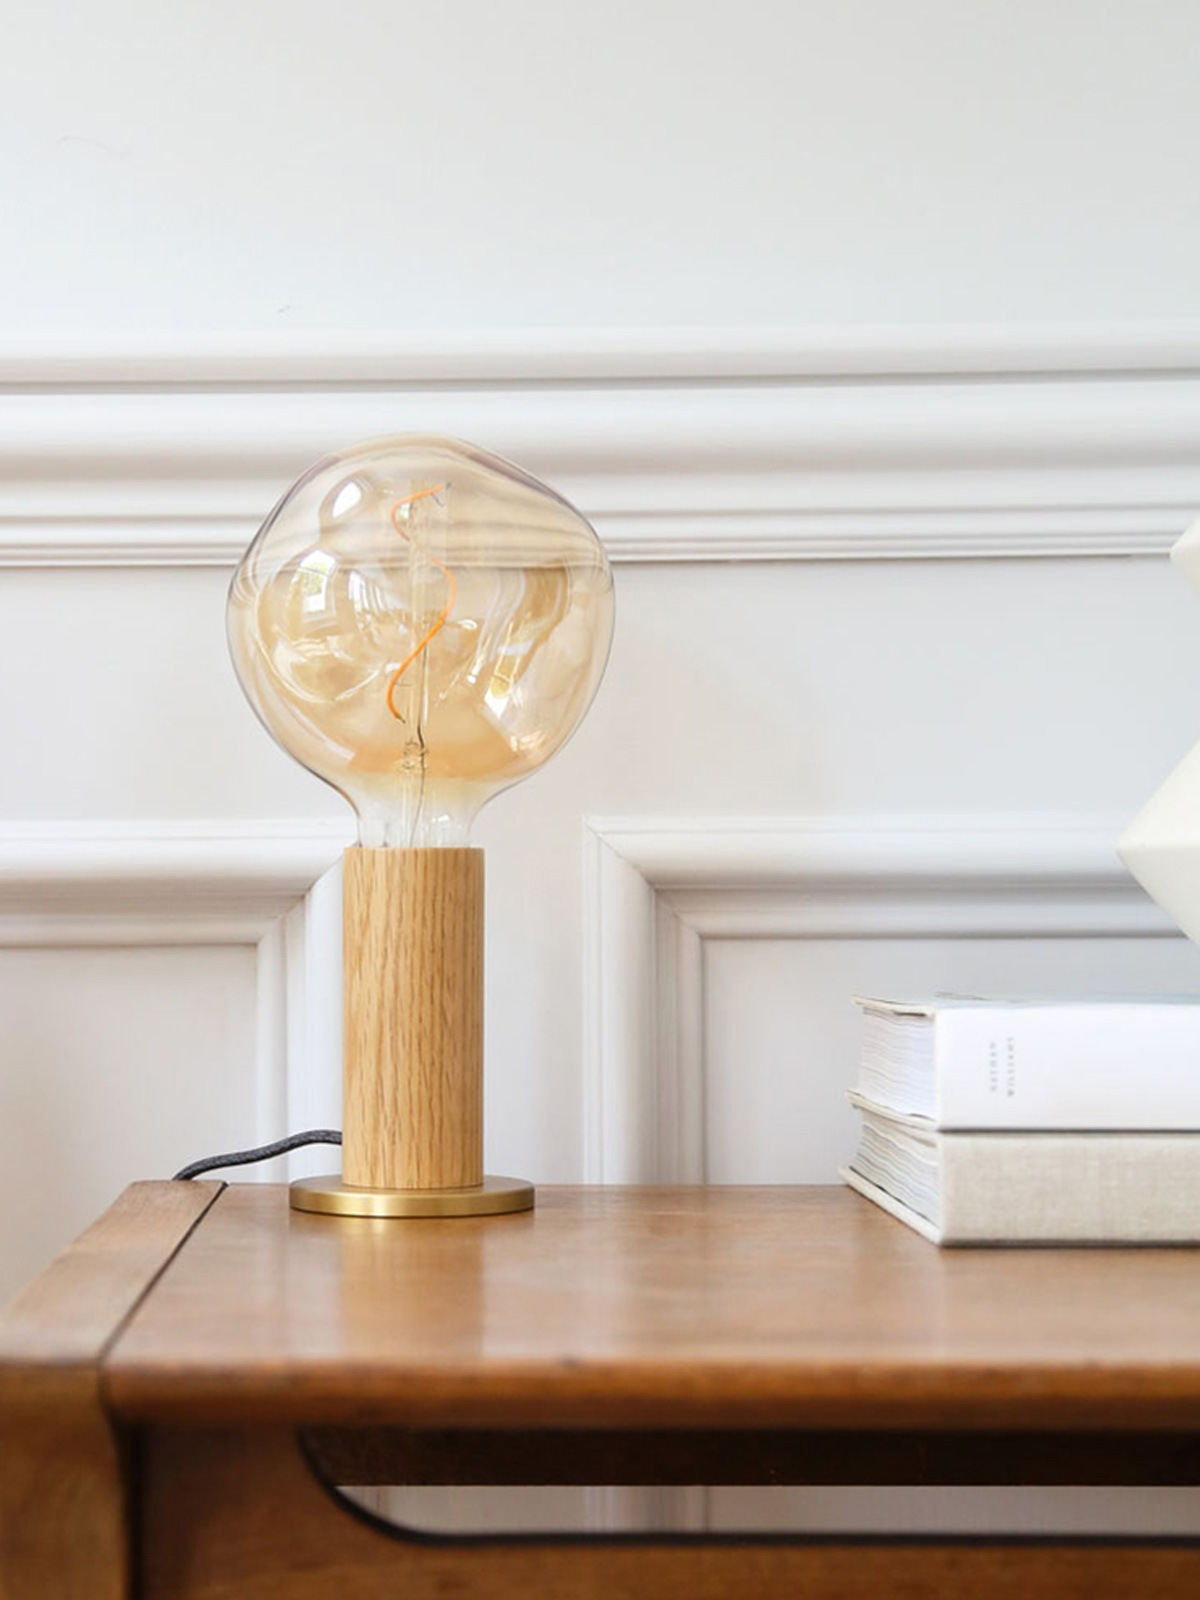 DesignOrt Blog: Knuckle Table Lamp Holz Tischlampe Tala DesignOrt Onlineshop Lampen Berlin